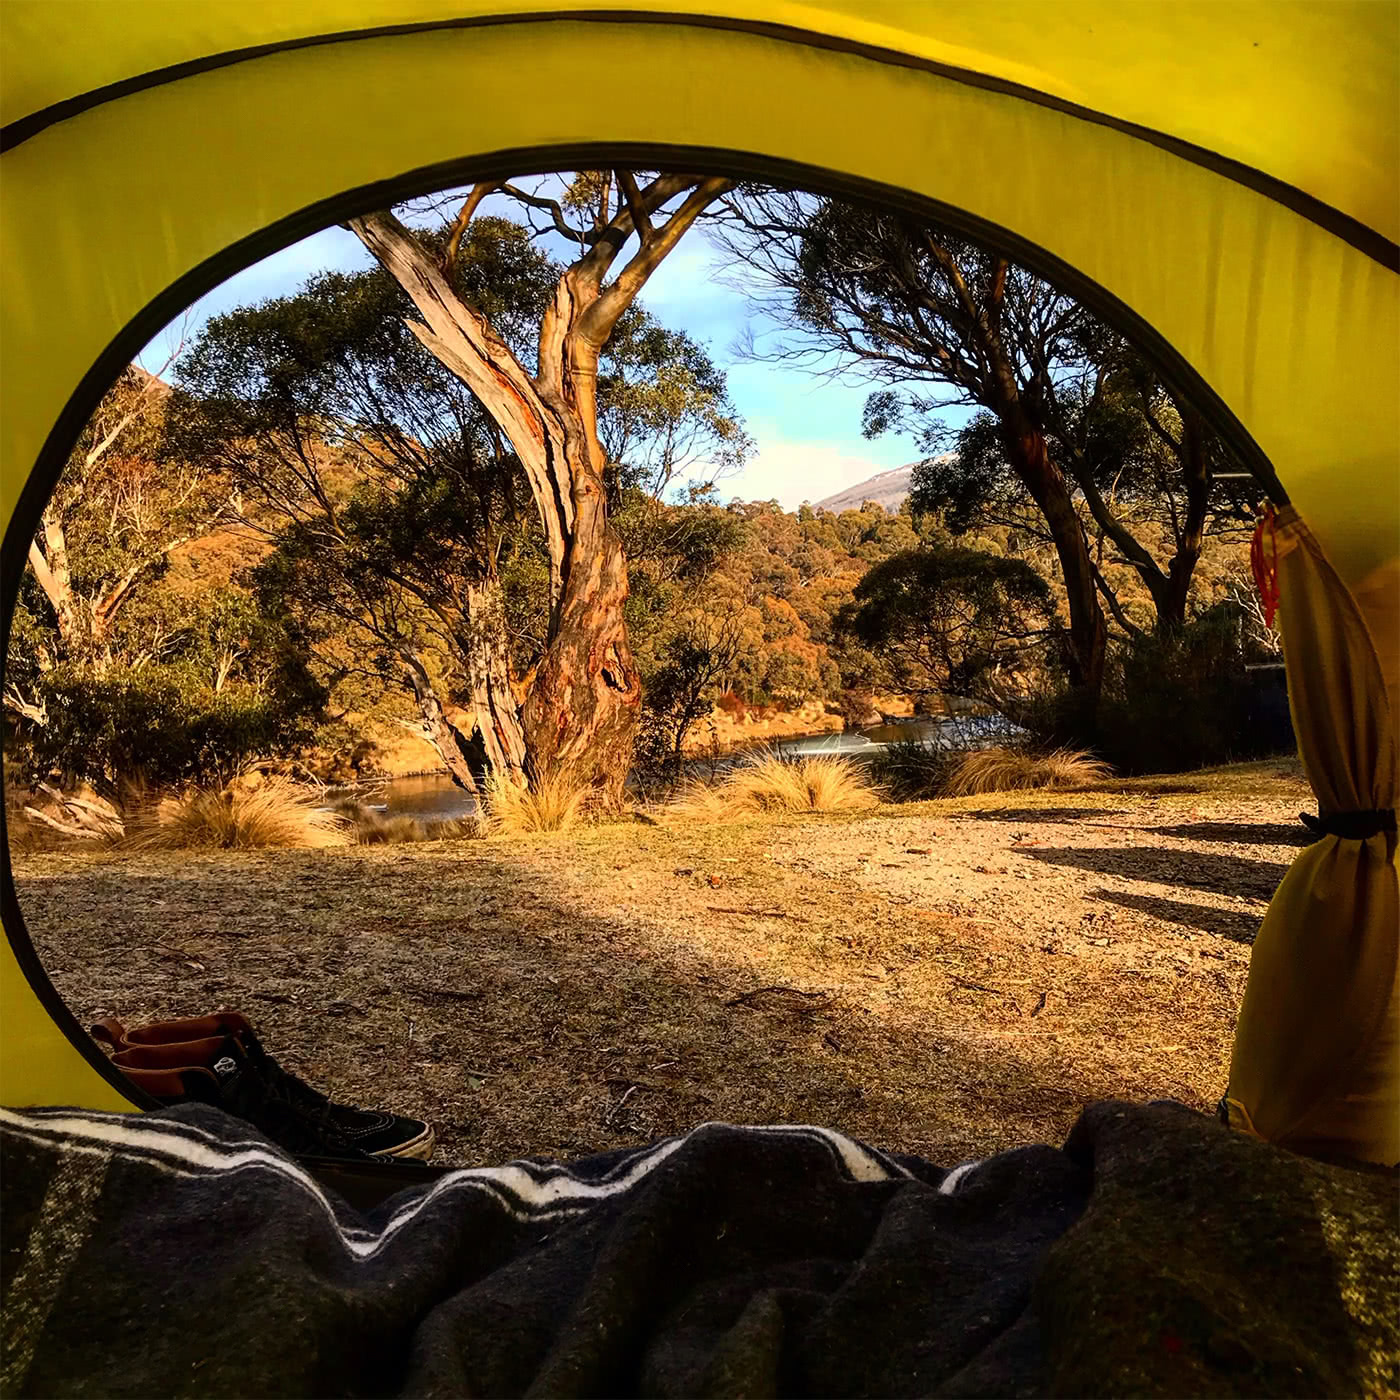 5 Reasons For An Overnight Adventure Mattie Gould sunrise, tent, river